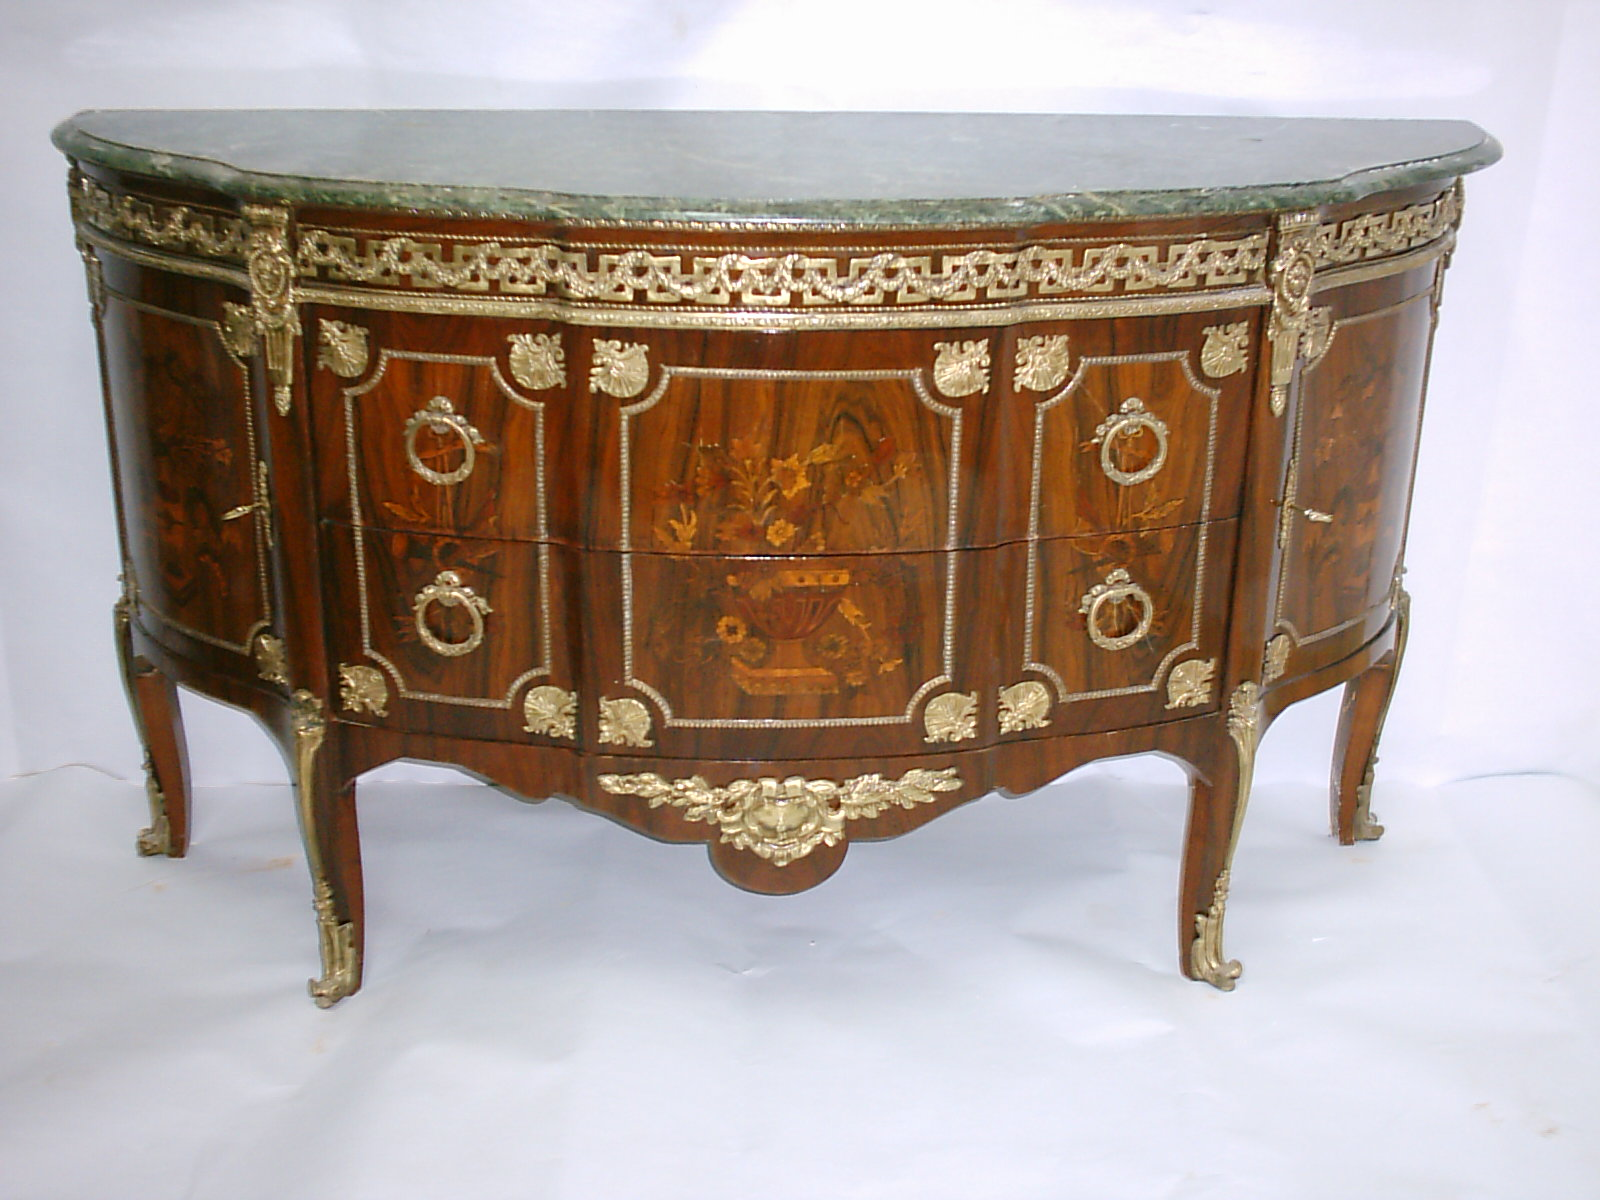 Furniture antique and reproduction furniture a great for Antique furnishings